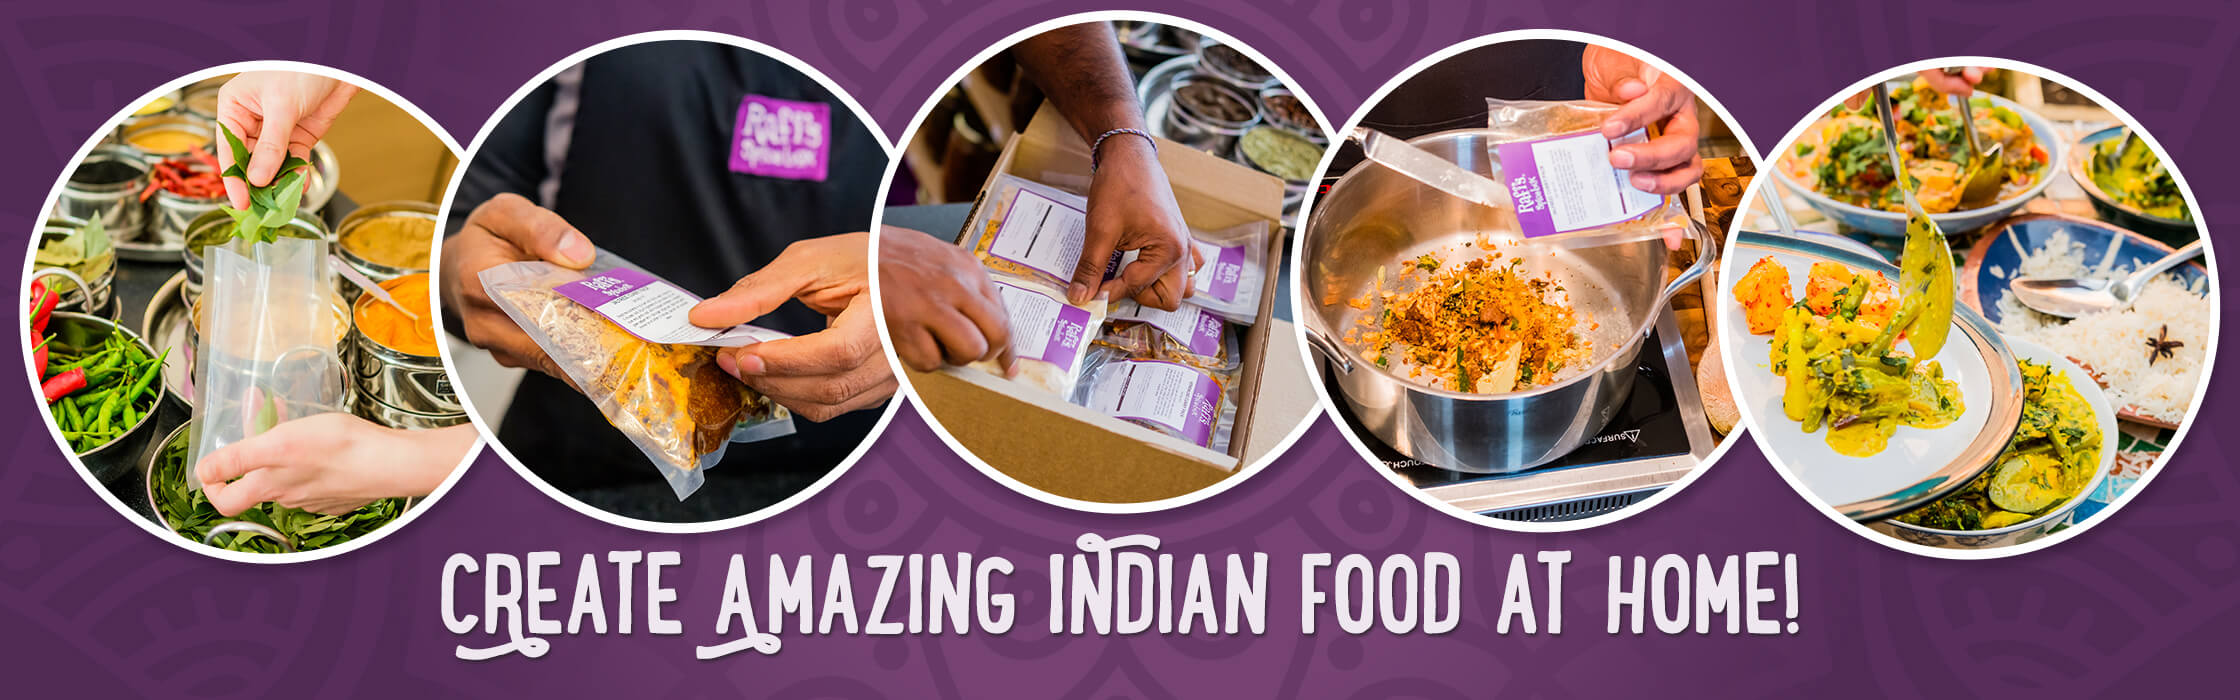 Amazing Indian Food